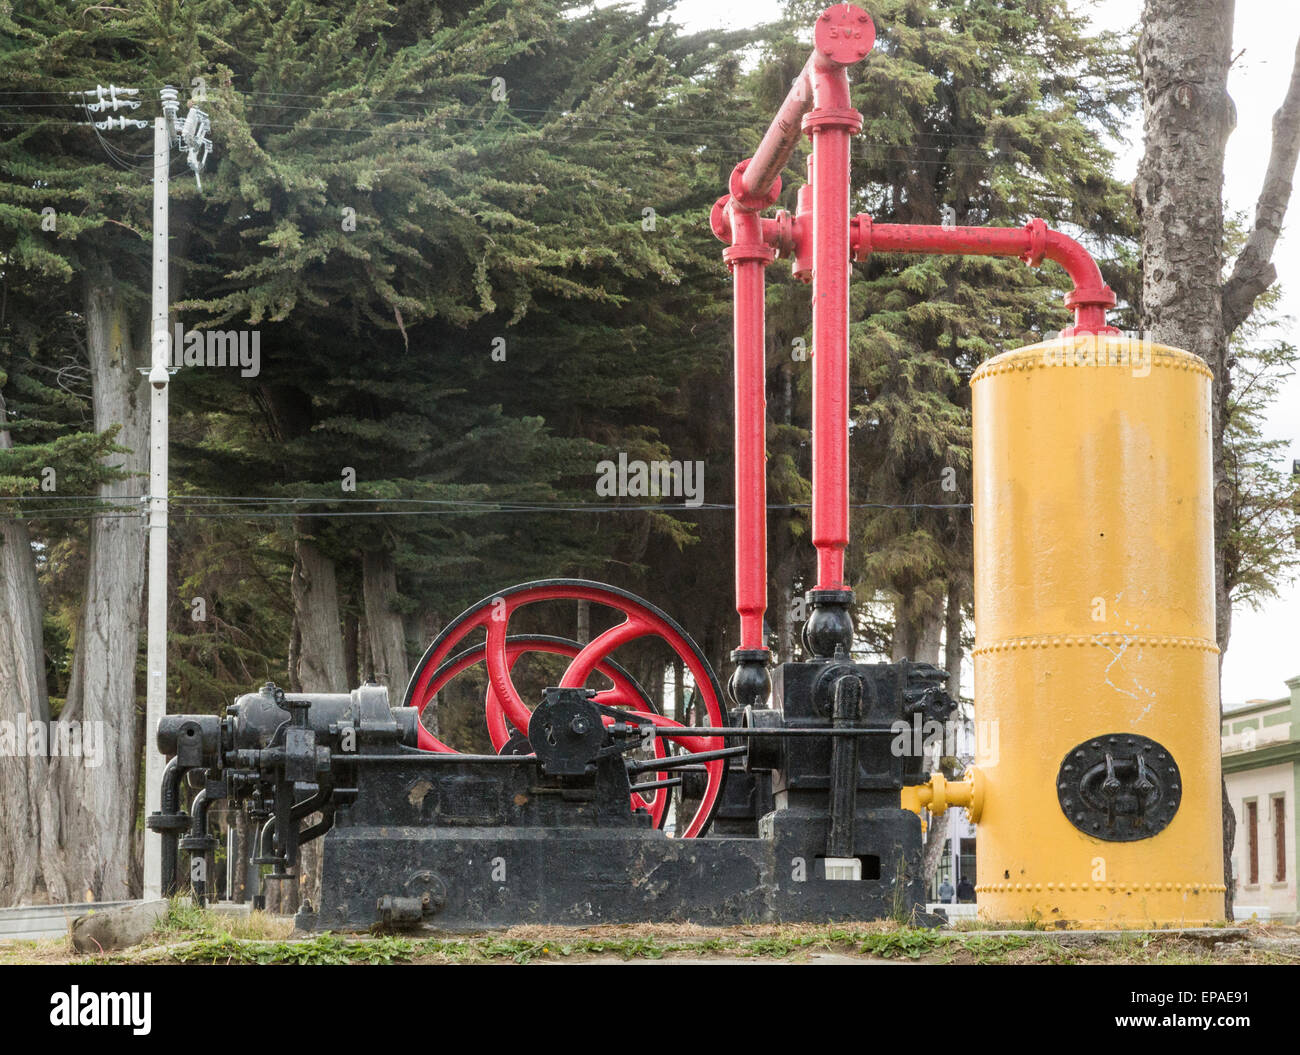 obsolete steam powered pumping machine, Punta Arenas, Chile - Stock Image